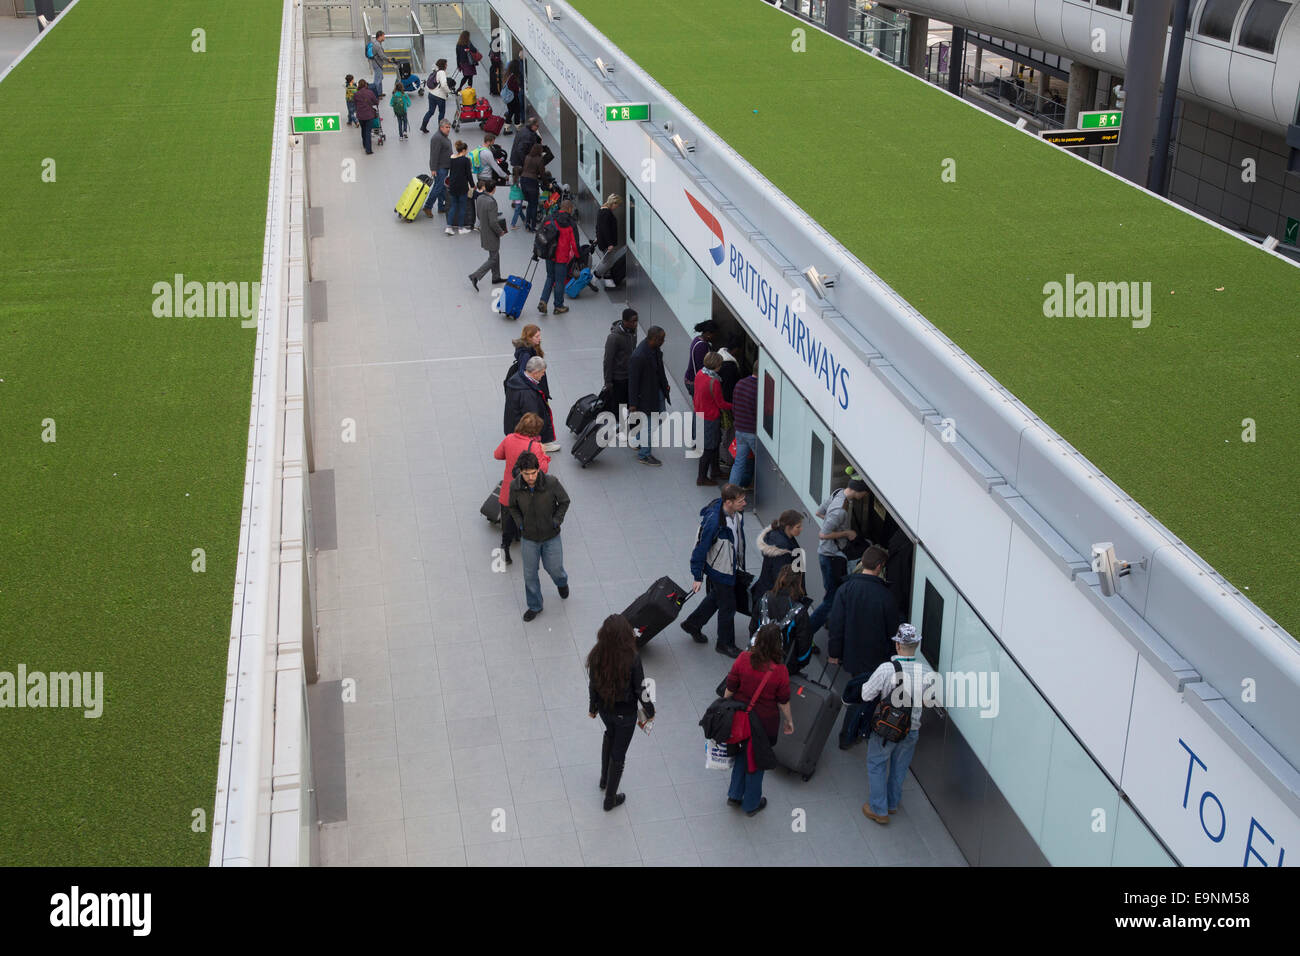 Monorail train platform at London Gatwick Airport North Terminal. Transport to South Terminal. People waiting on Stock Photo